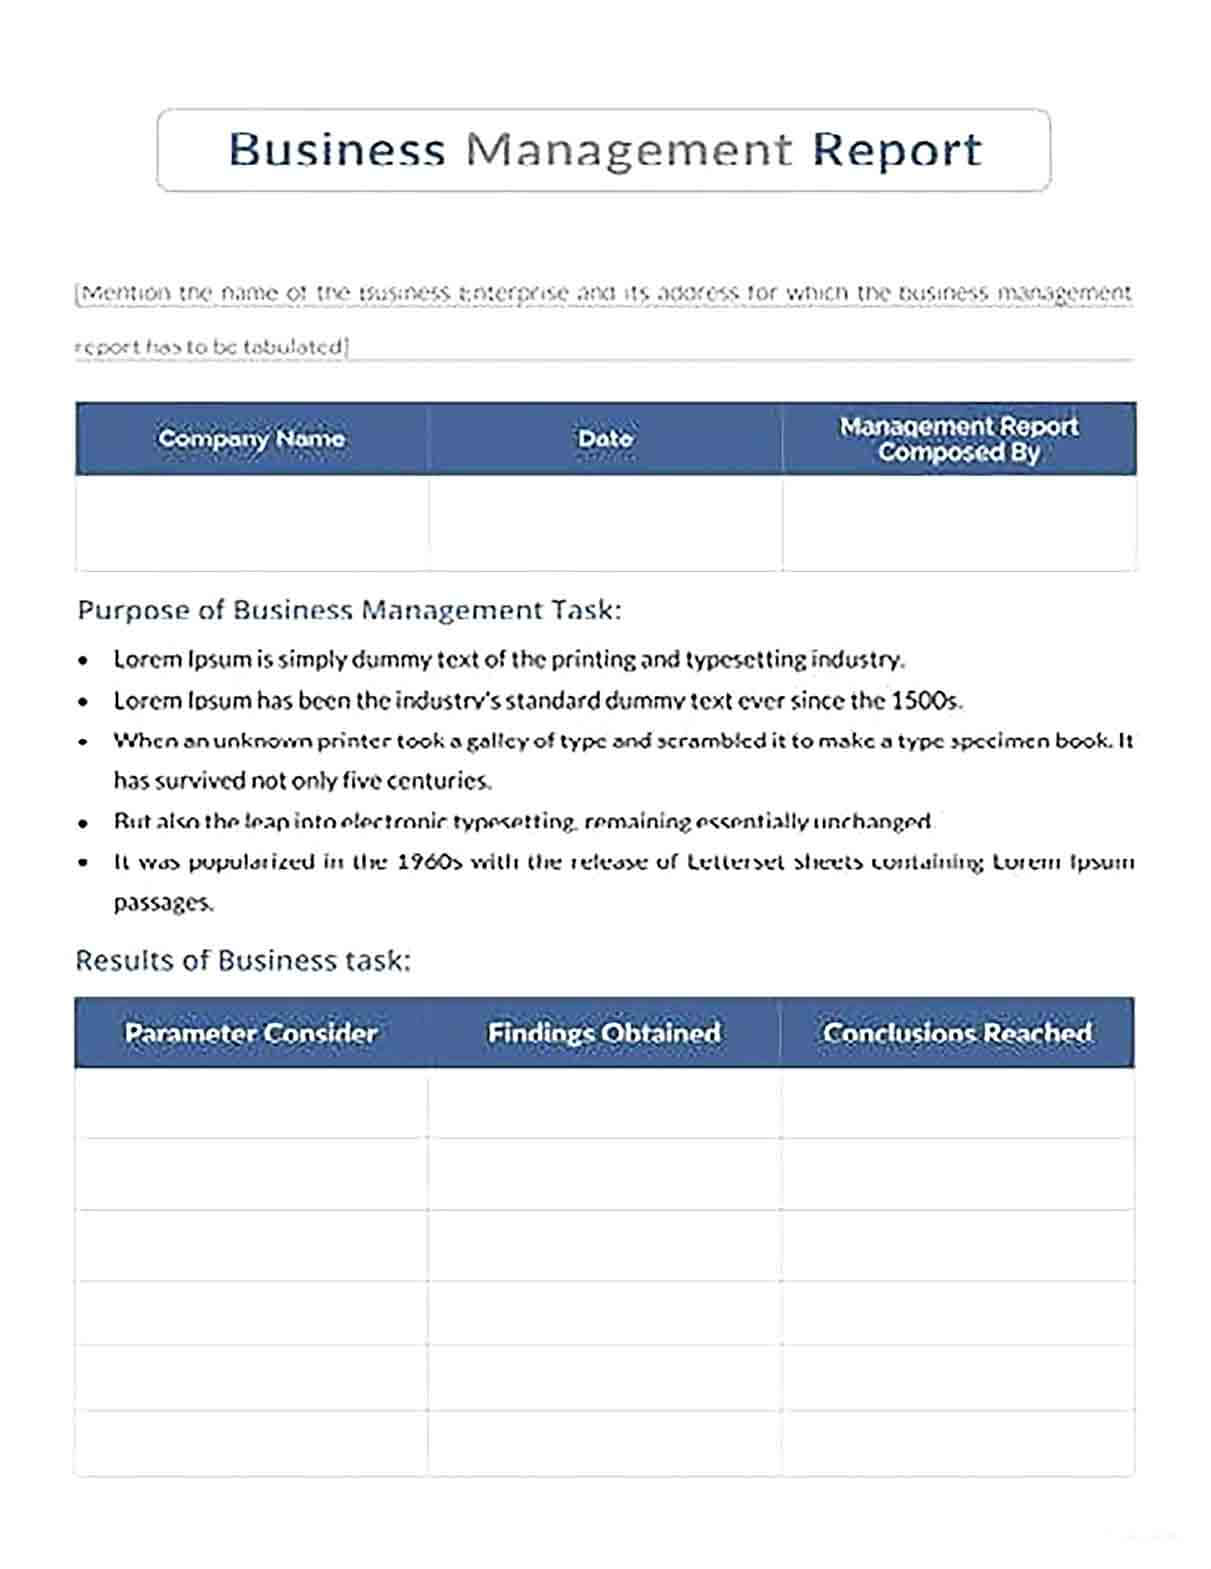 Sample business management report 1 440x622 1